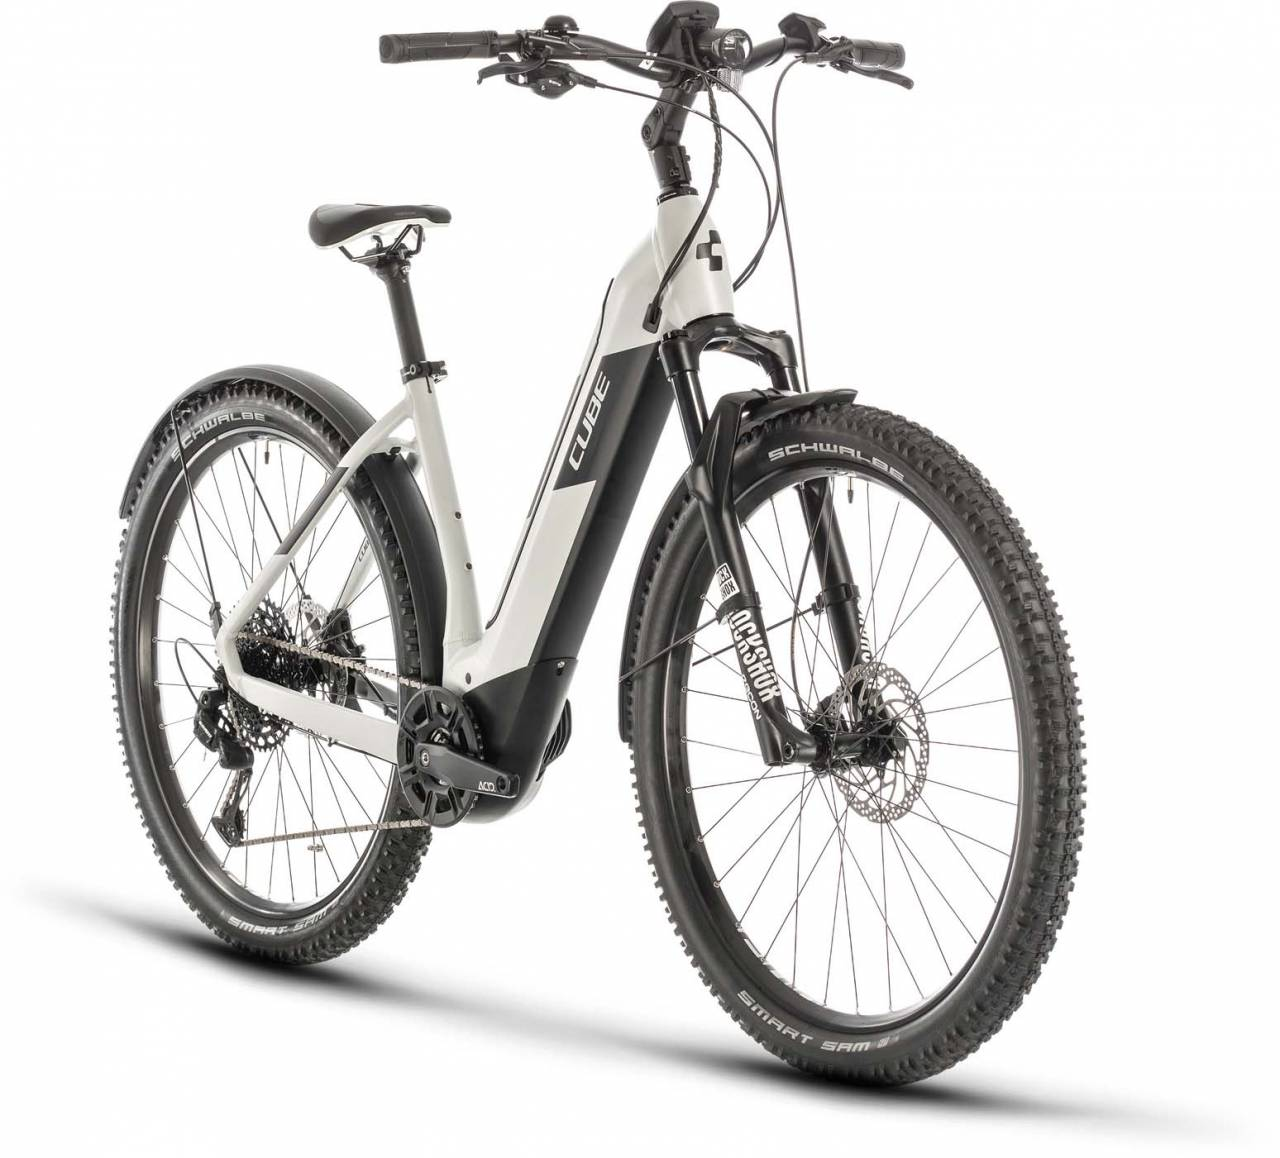 Cube Nuride Hybrid EXC 625 Allroad grey n black 2020 - E-Bike Hardtail Mountainbike